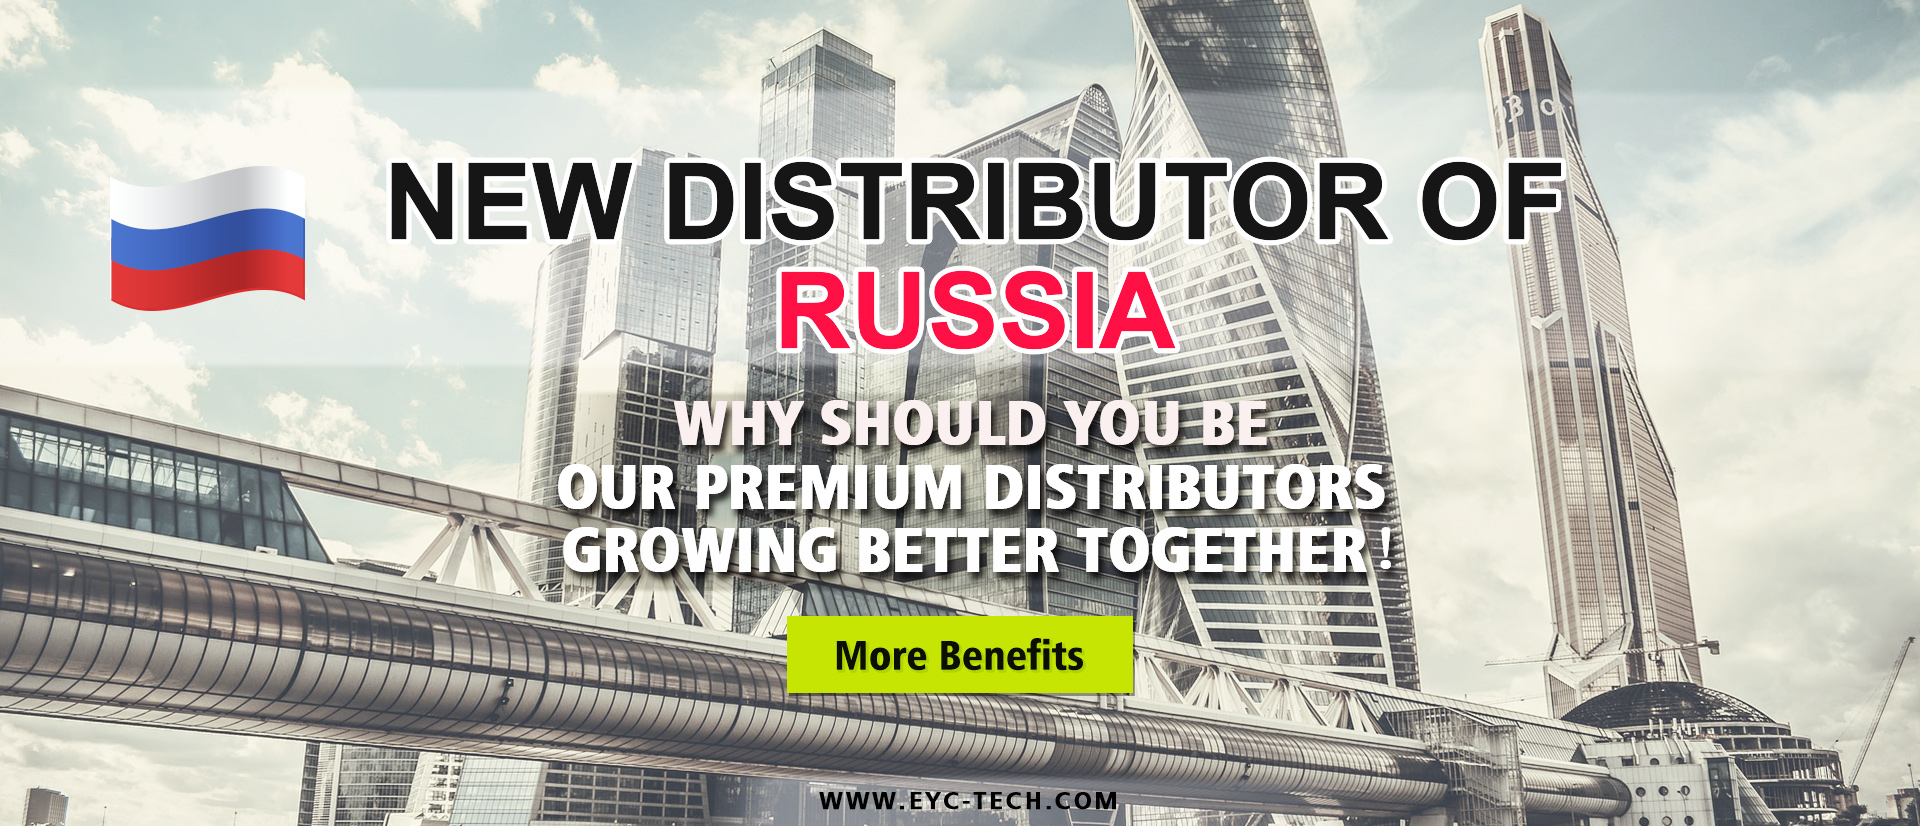 eYc New Premium Distributor of Russia 2018